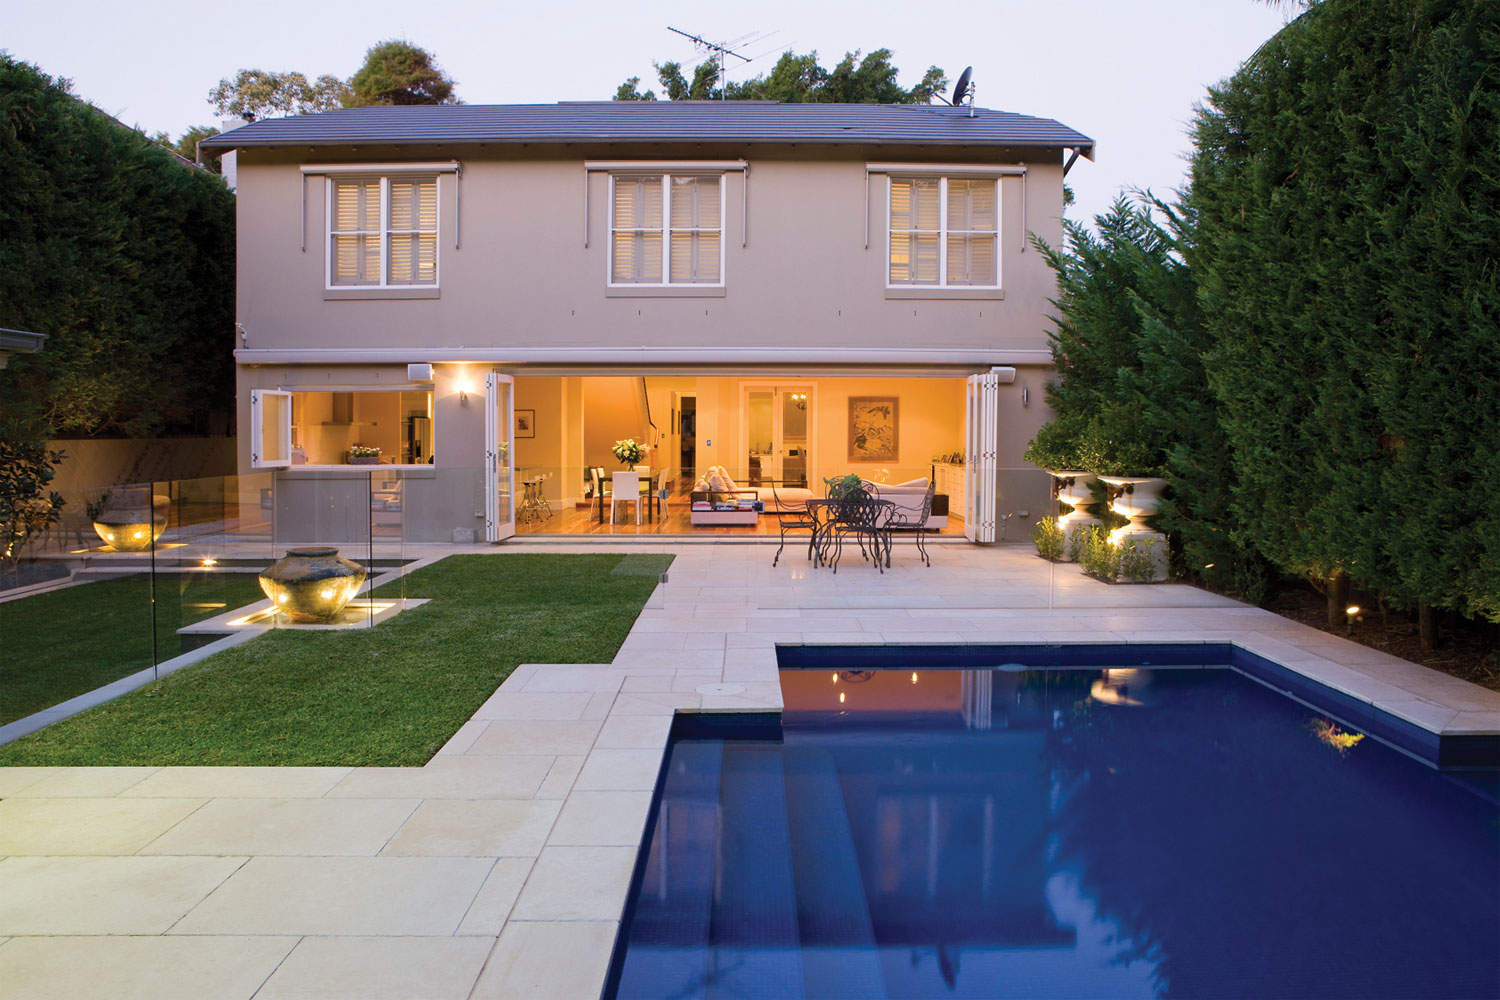 Install a pool fence without ruining your outdoor aesthetic